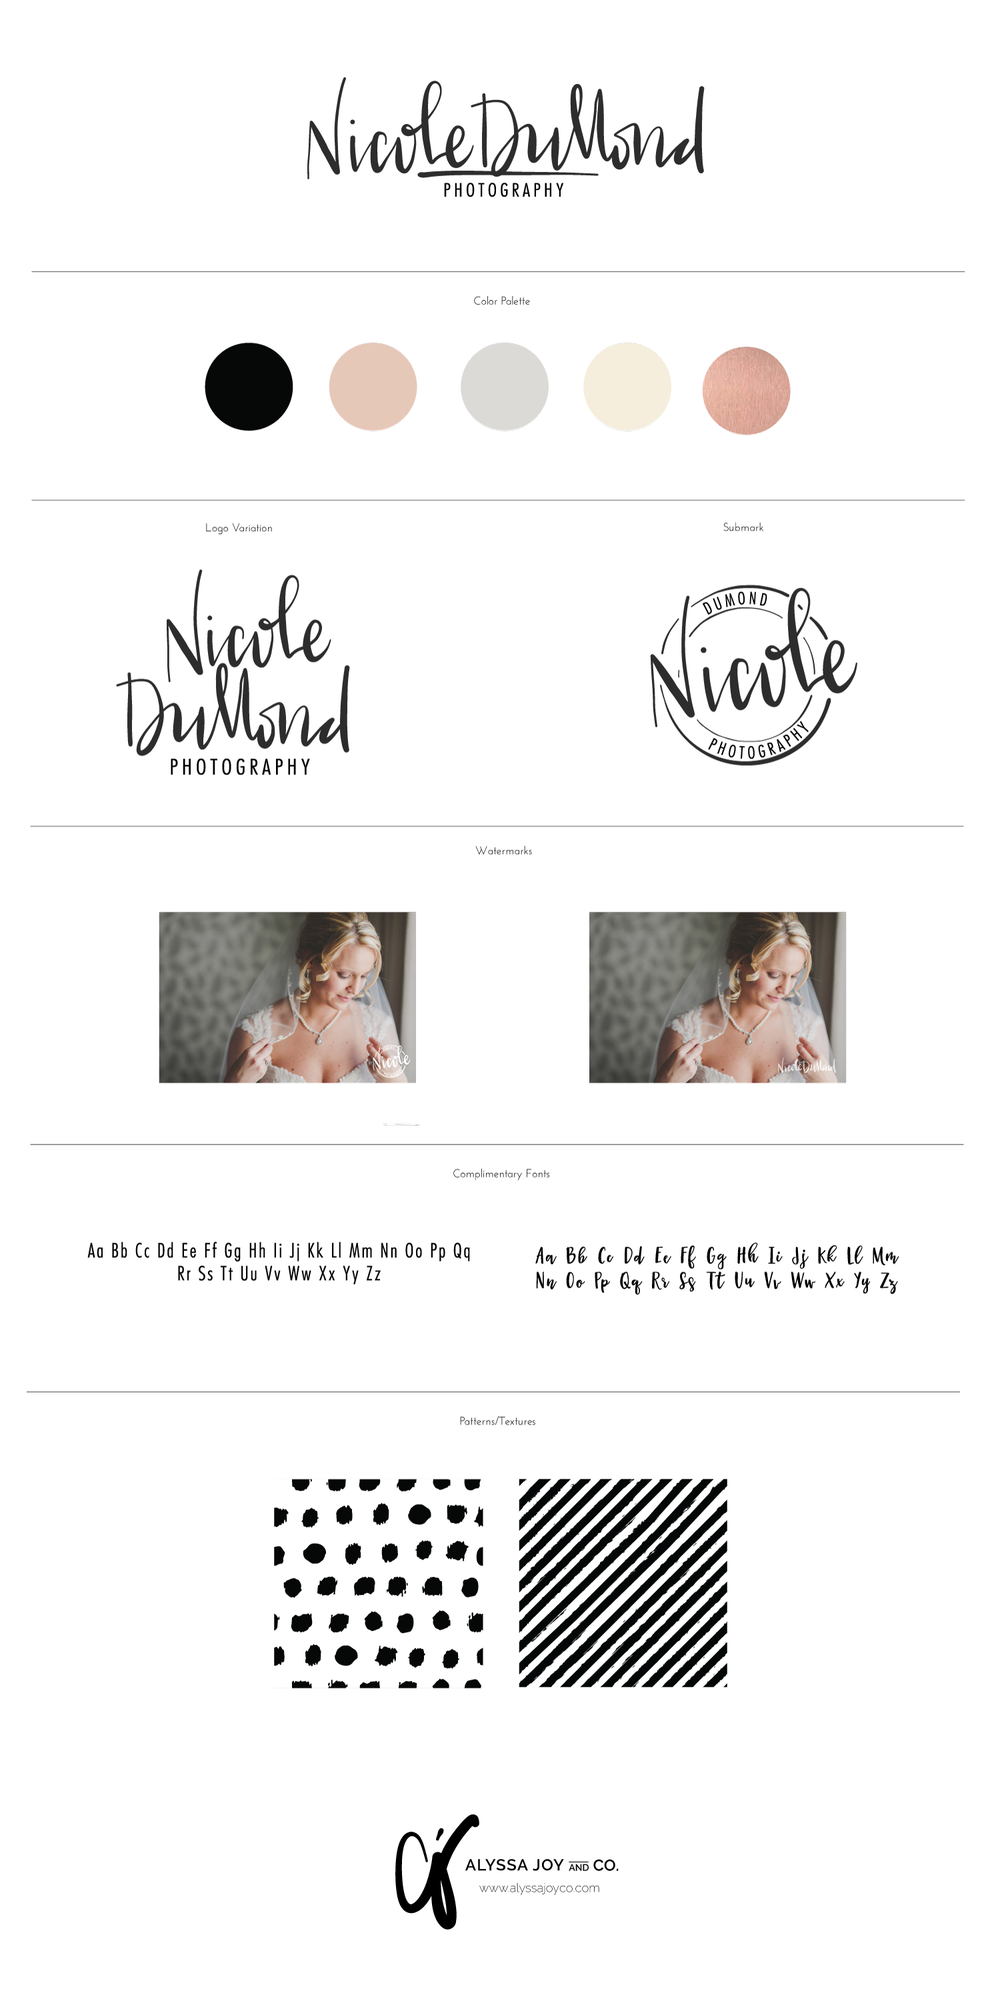 Alyssa Joy & Co. || Brand & Web Design || Brand Board Nicole DuMond Photography